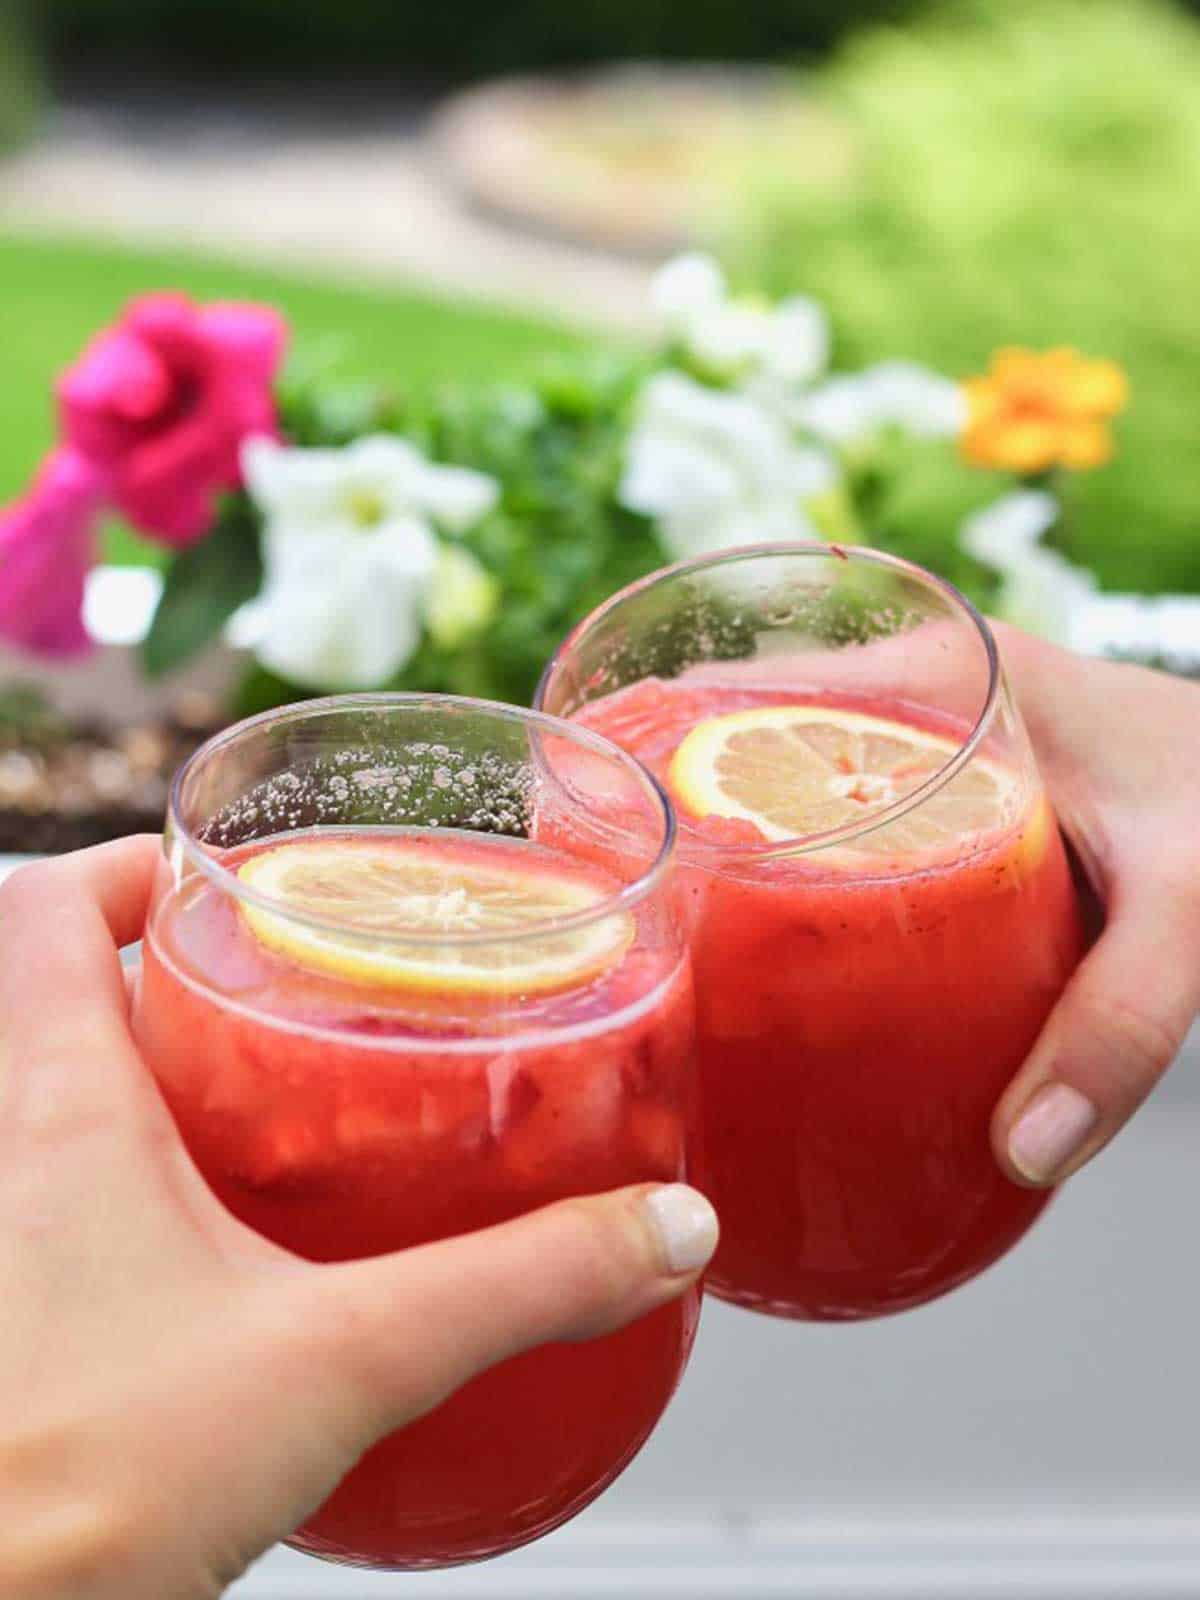 Two hands holding glass with red cocktail garnished with floating lemon slice clinking together to cheers.